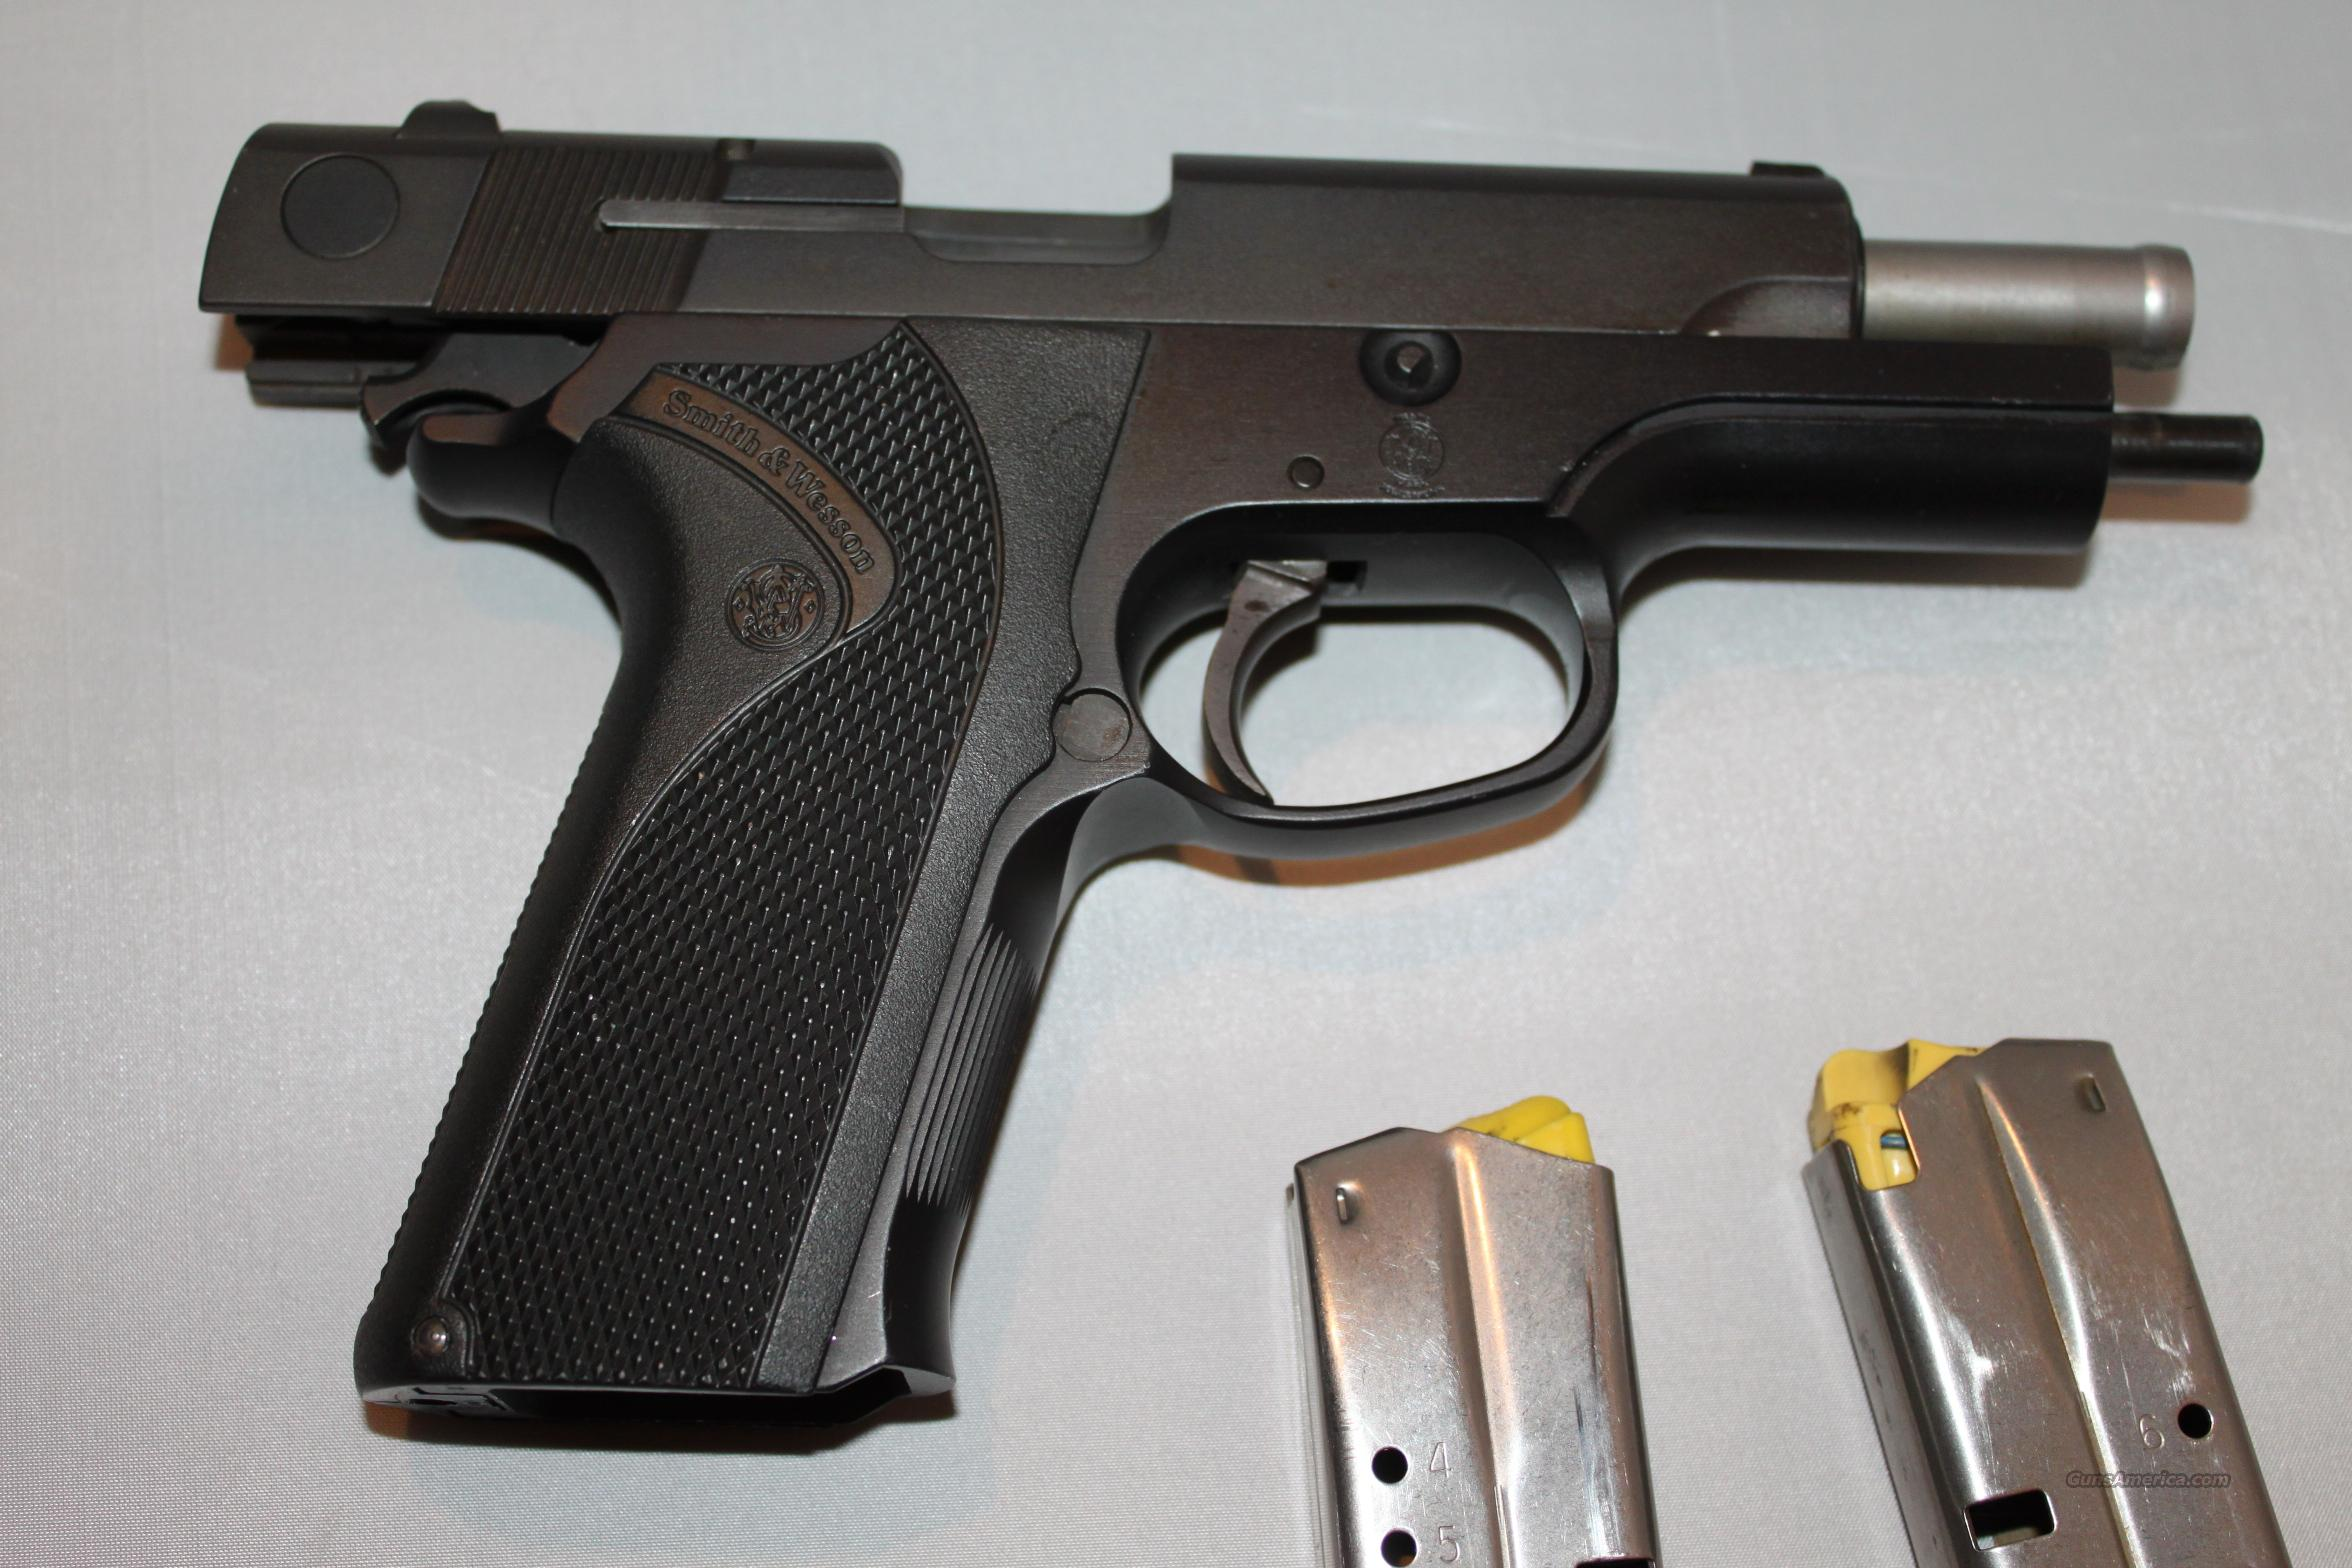 Smith & Wesson Model 411 .40Cal S&W  Guns > Pistols > Smith & Wesson Pistols - Autos > Alloy Frame